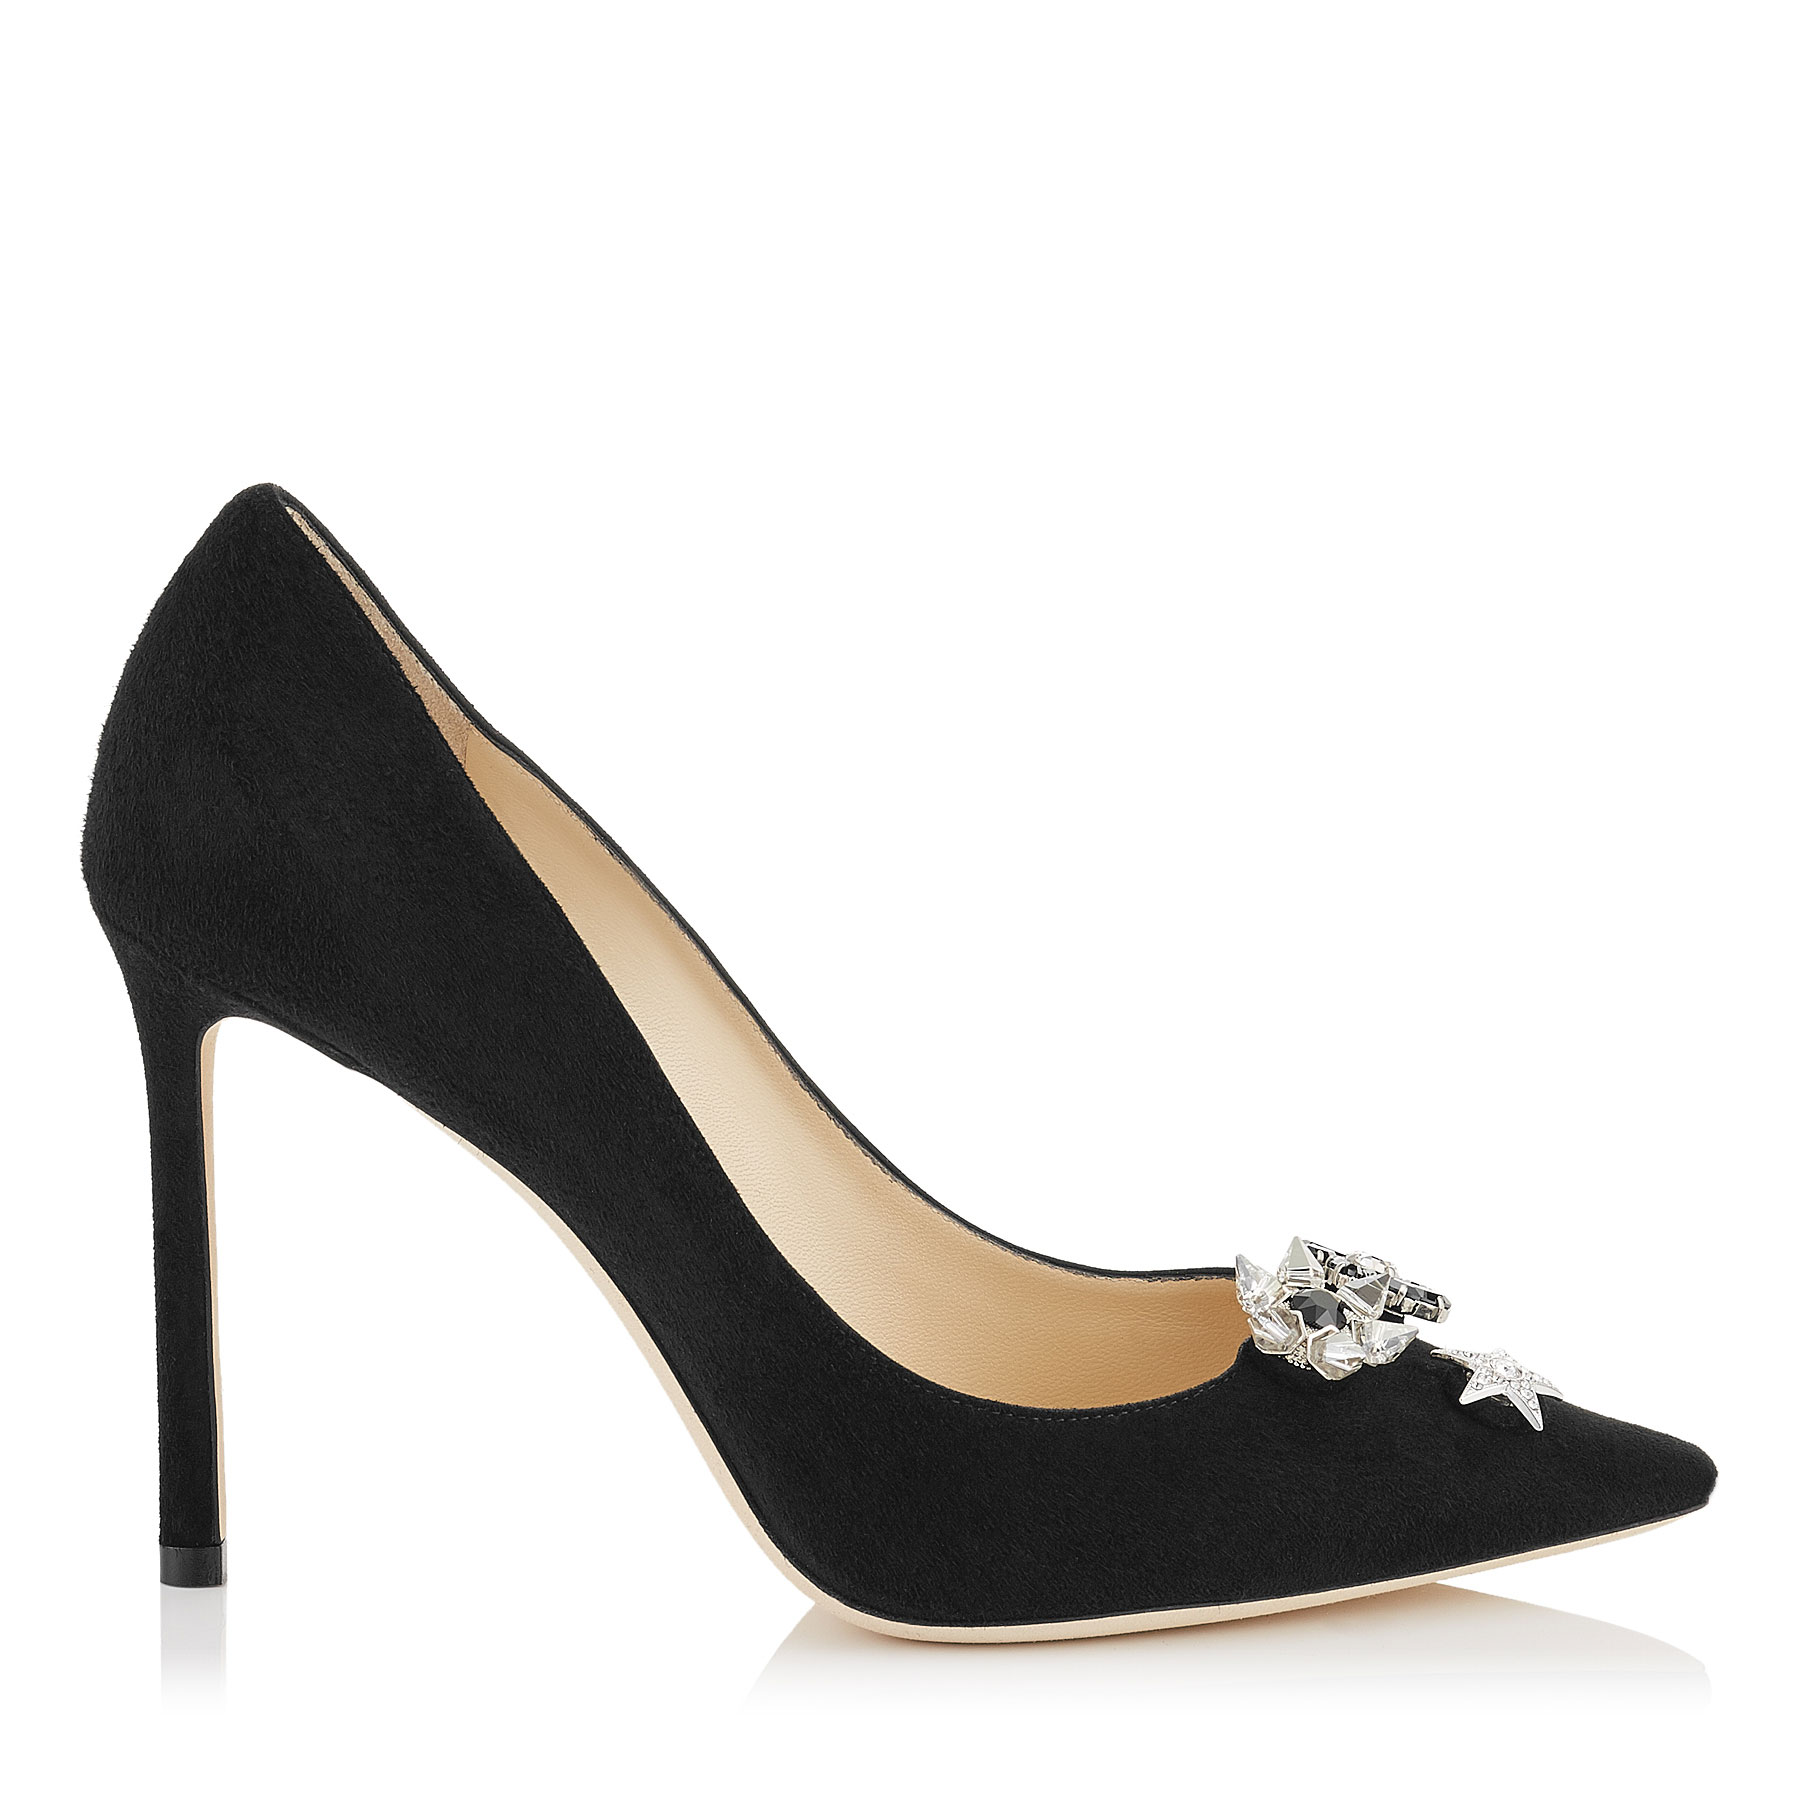 bce91afa2d6 JASMINE 100 Black Suede Pointy Toe Pumps with Jewelled Buttons